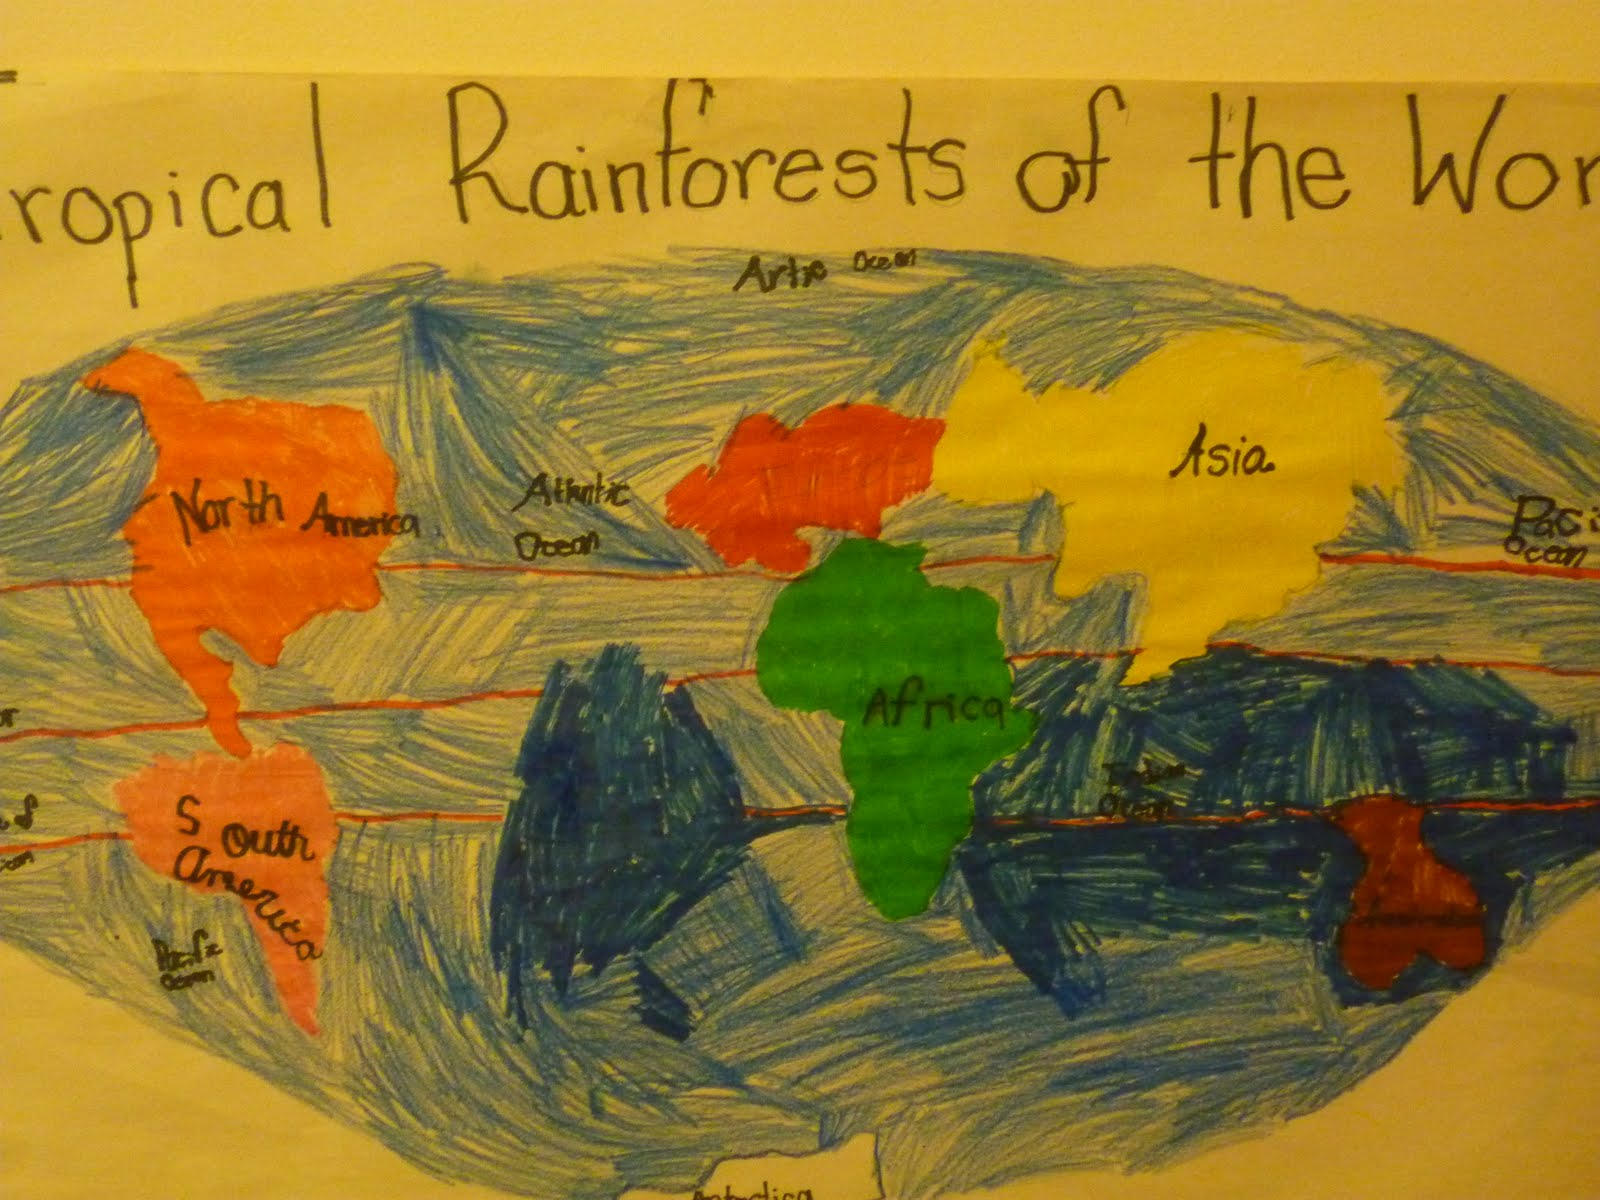 The Work Plan Where Are All The Rainforest